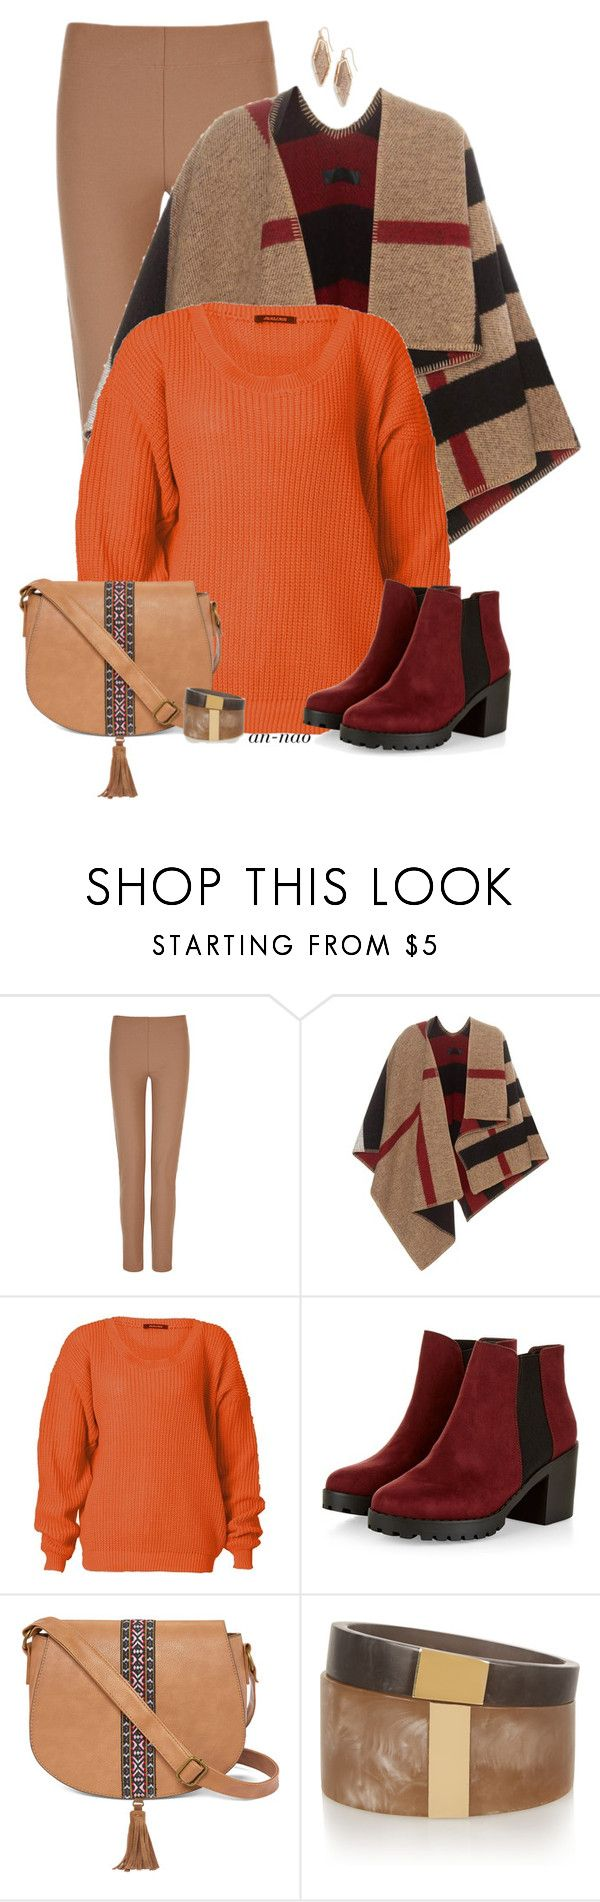 """""""Poncho for fall."""" by an-nao ❤ liked on Polyvore featuring Joseph, Burberry, T-shirt & Jeans, Isabel Marant and Kendra Scott"""